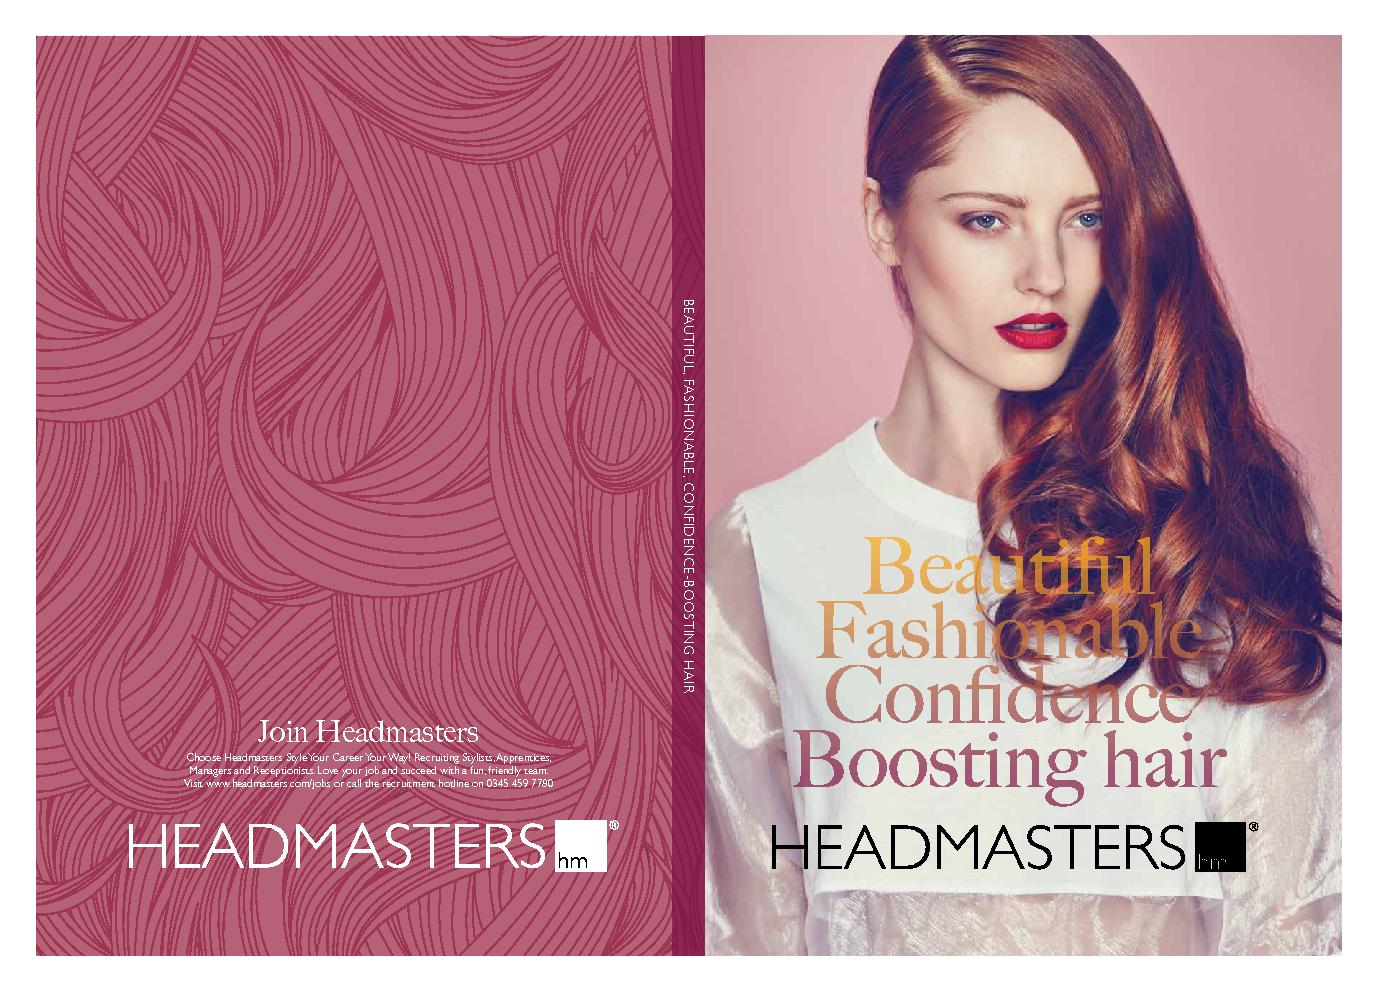 Follow Headmastersuk